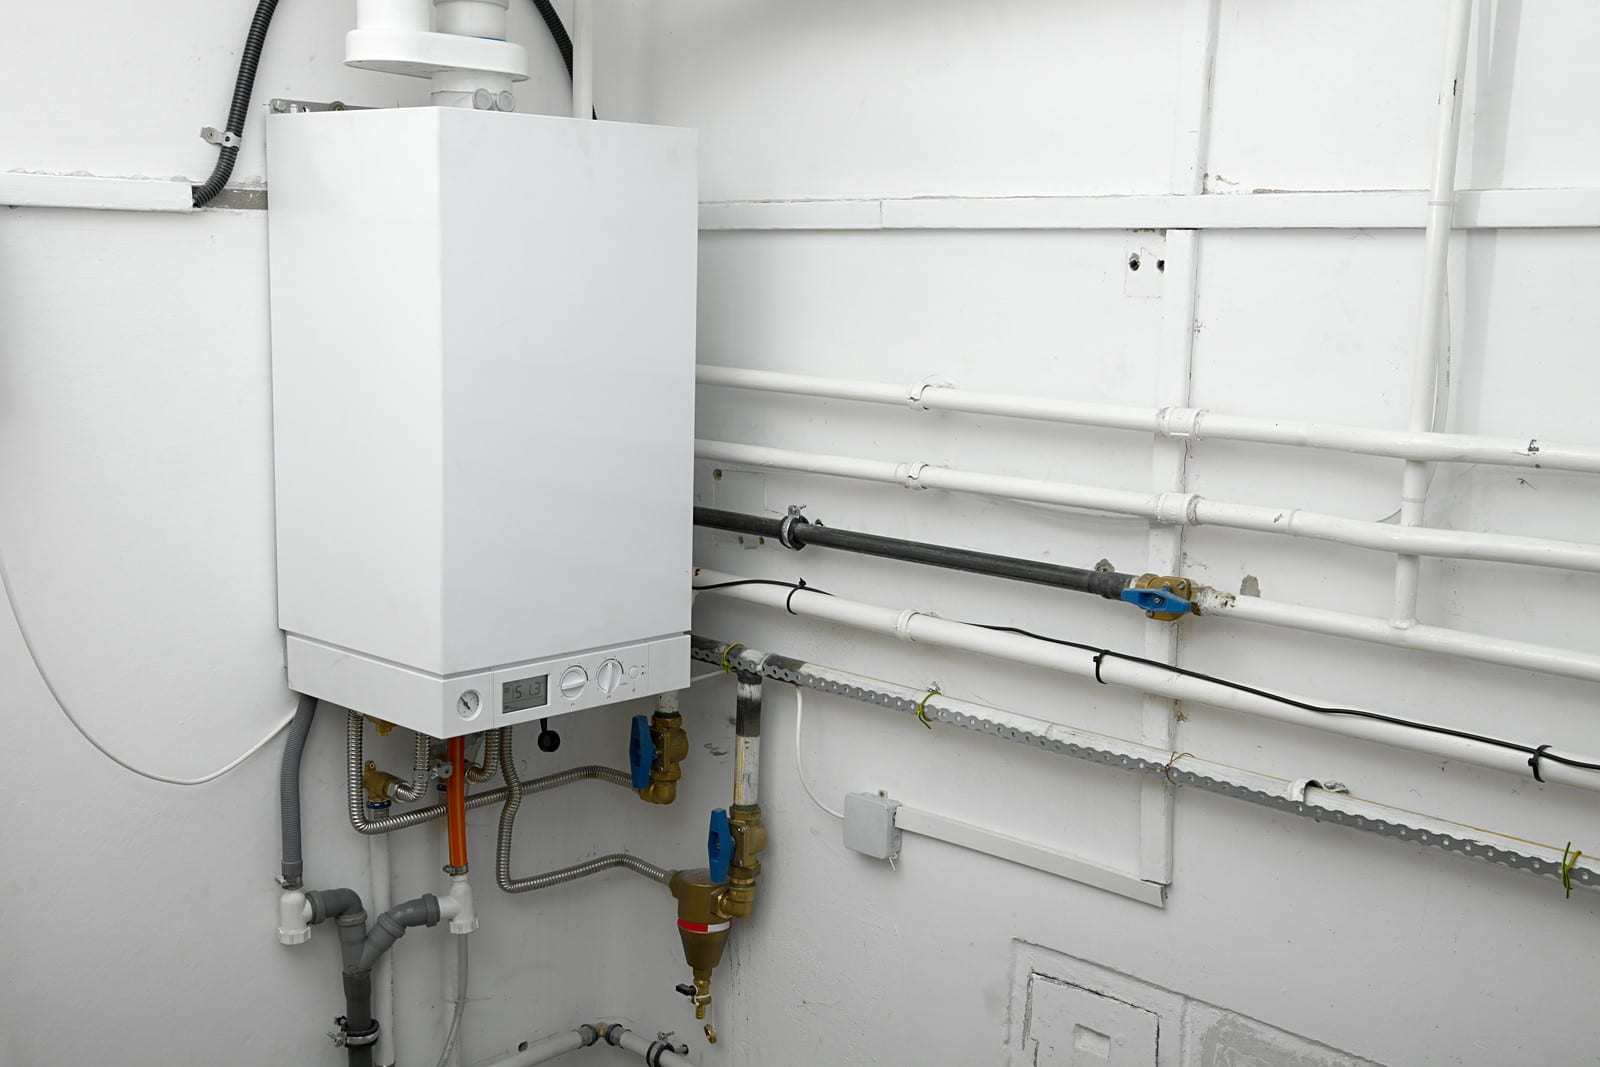 Upgrading Your Gas Boiler - When is the Right Time?